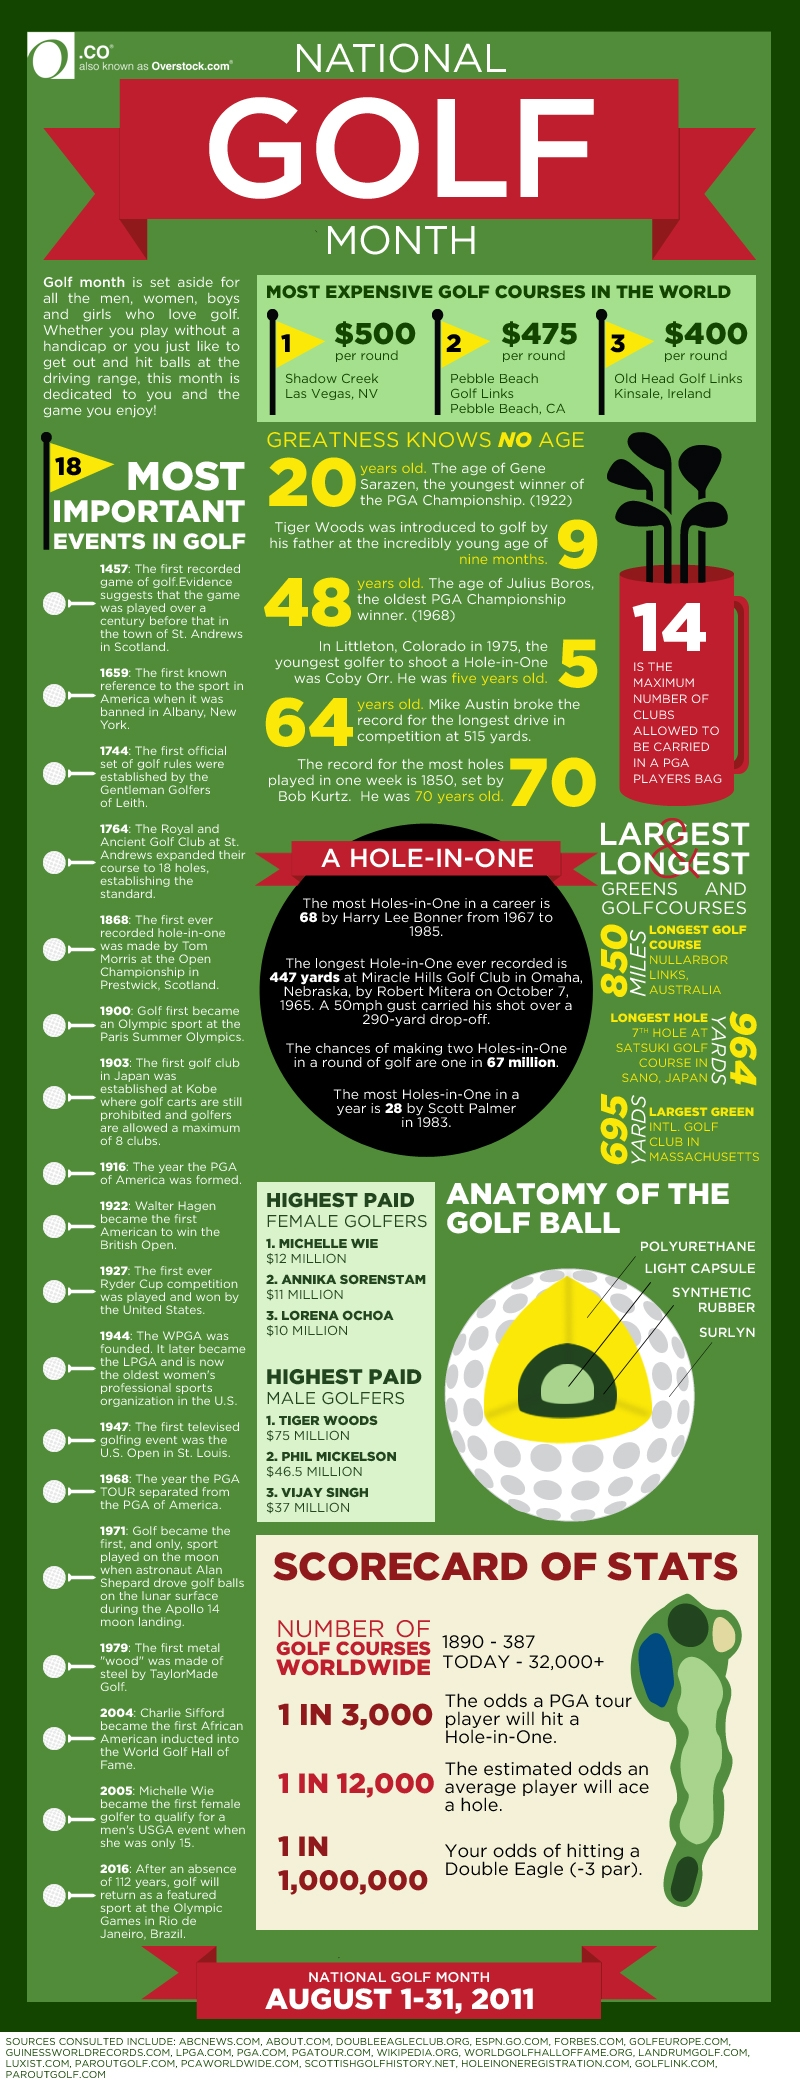 Golf Industry Facts and Timeline